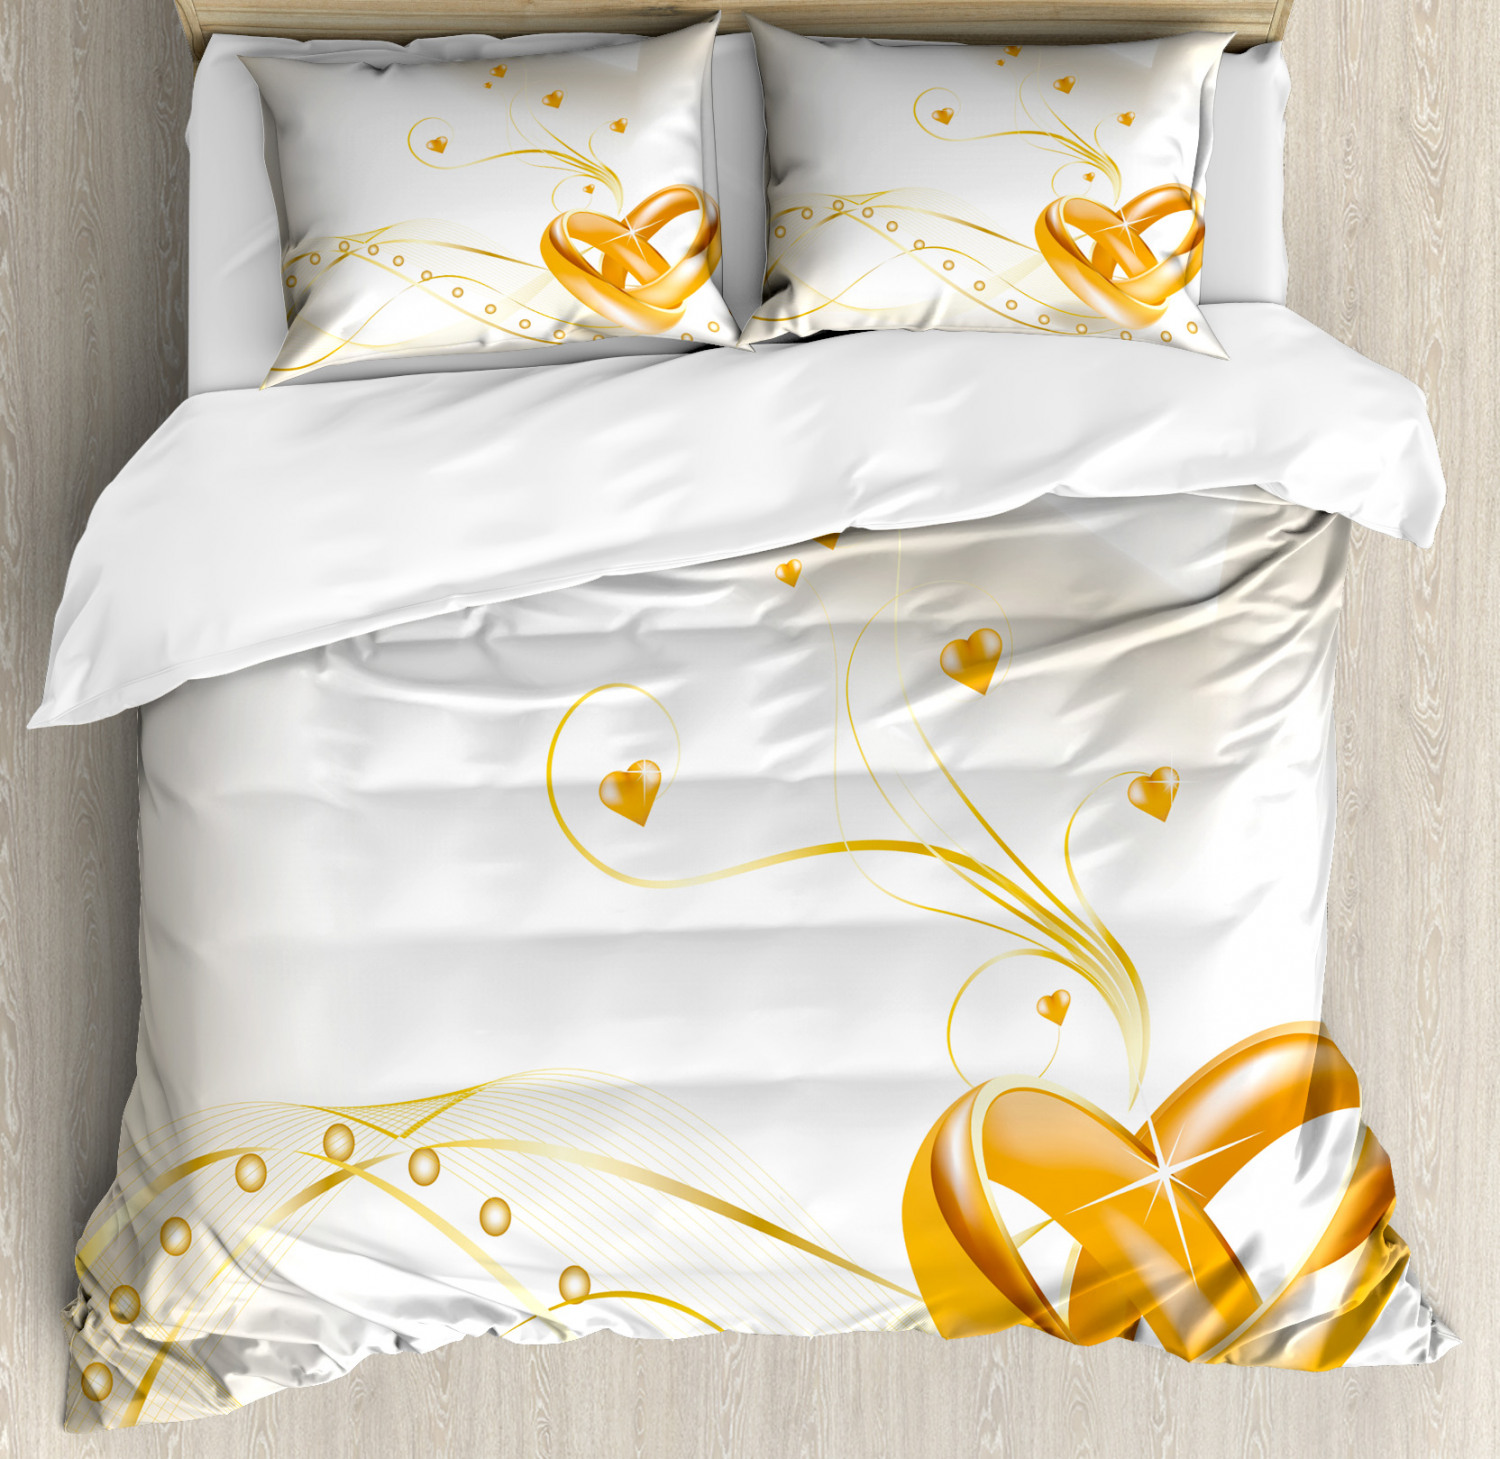 Wedding Duvet Cover Set with Pillow Shams Rings Heart 3D Style Print